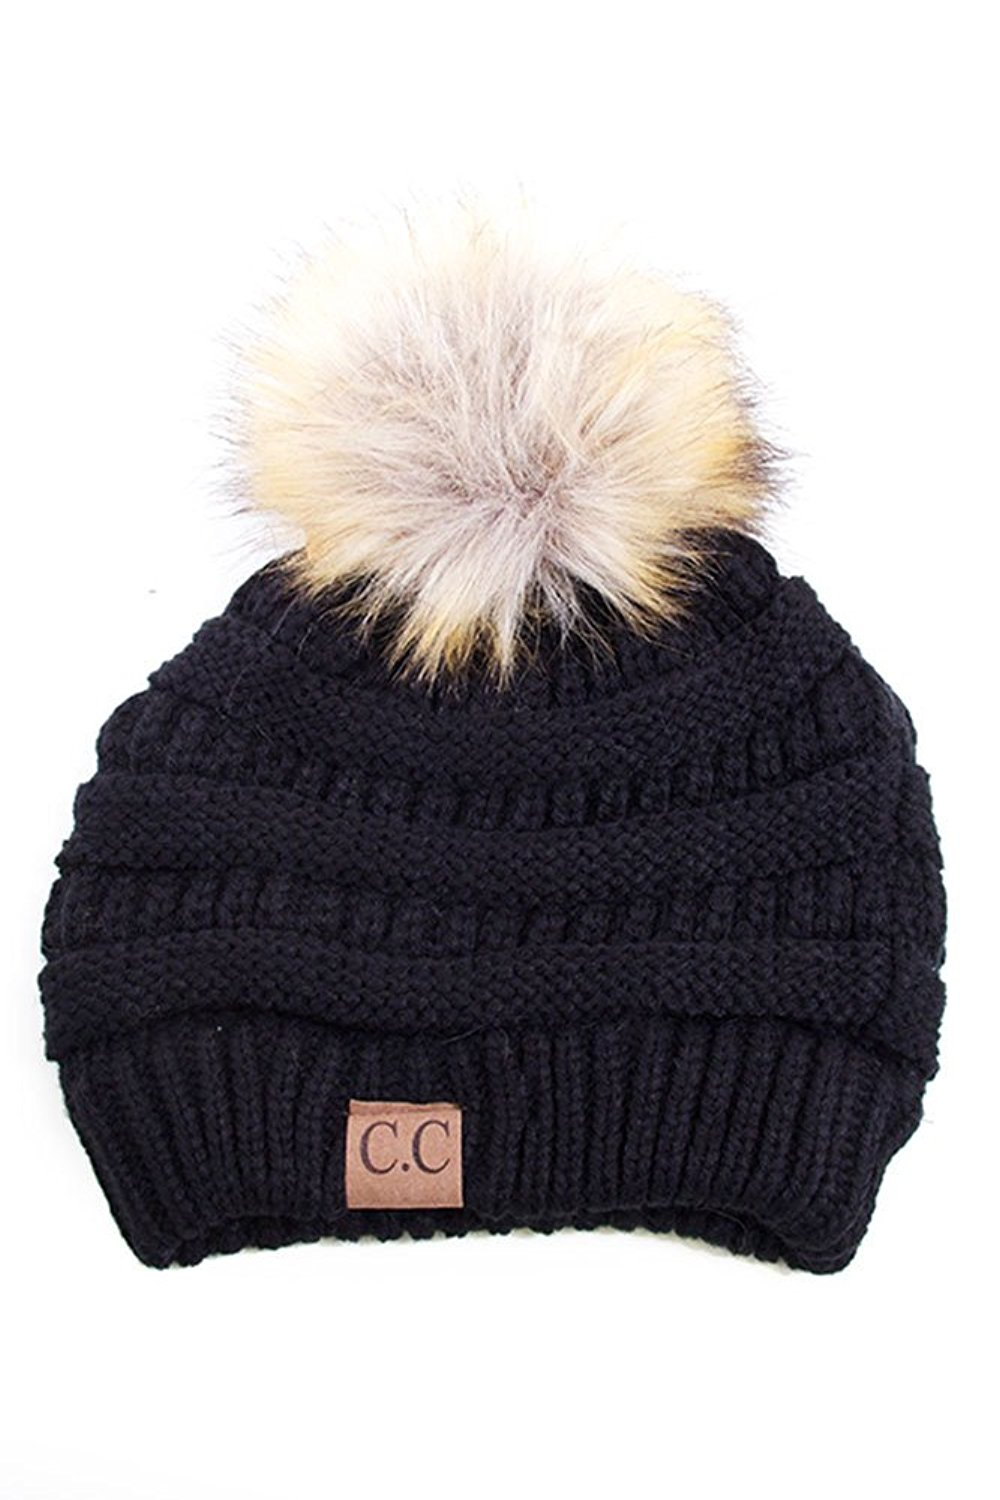 09a8018ad73d1 Soft Stretch Cable Knit Ribbed Faux Fur Pom Pom Beanie Hat (Black) at  Amazon Women's Clothing store: